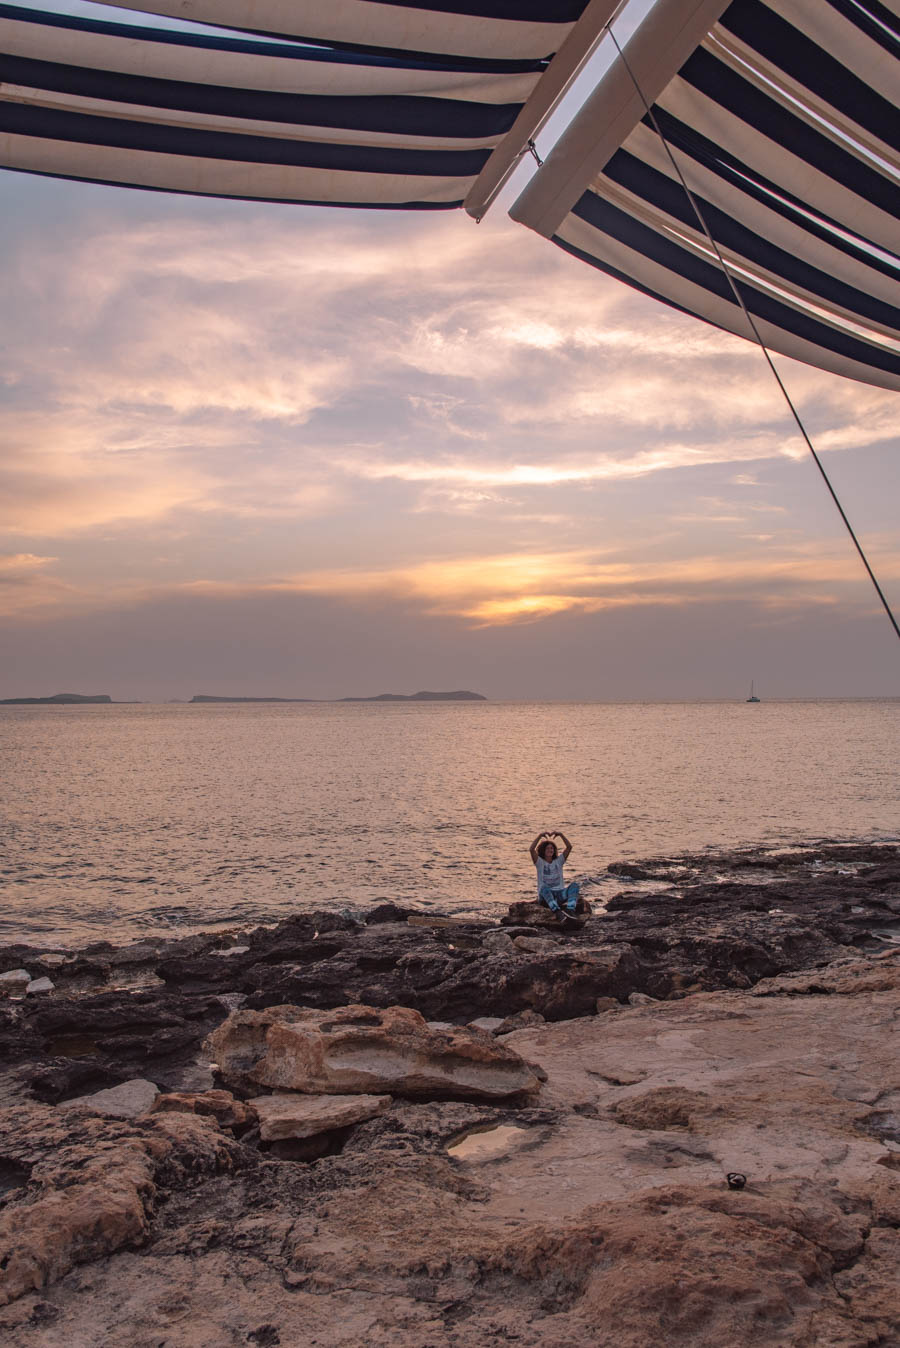 One of the best things to do in Ibiza is to watch the sunset from Cafe Del Mar.